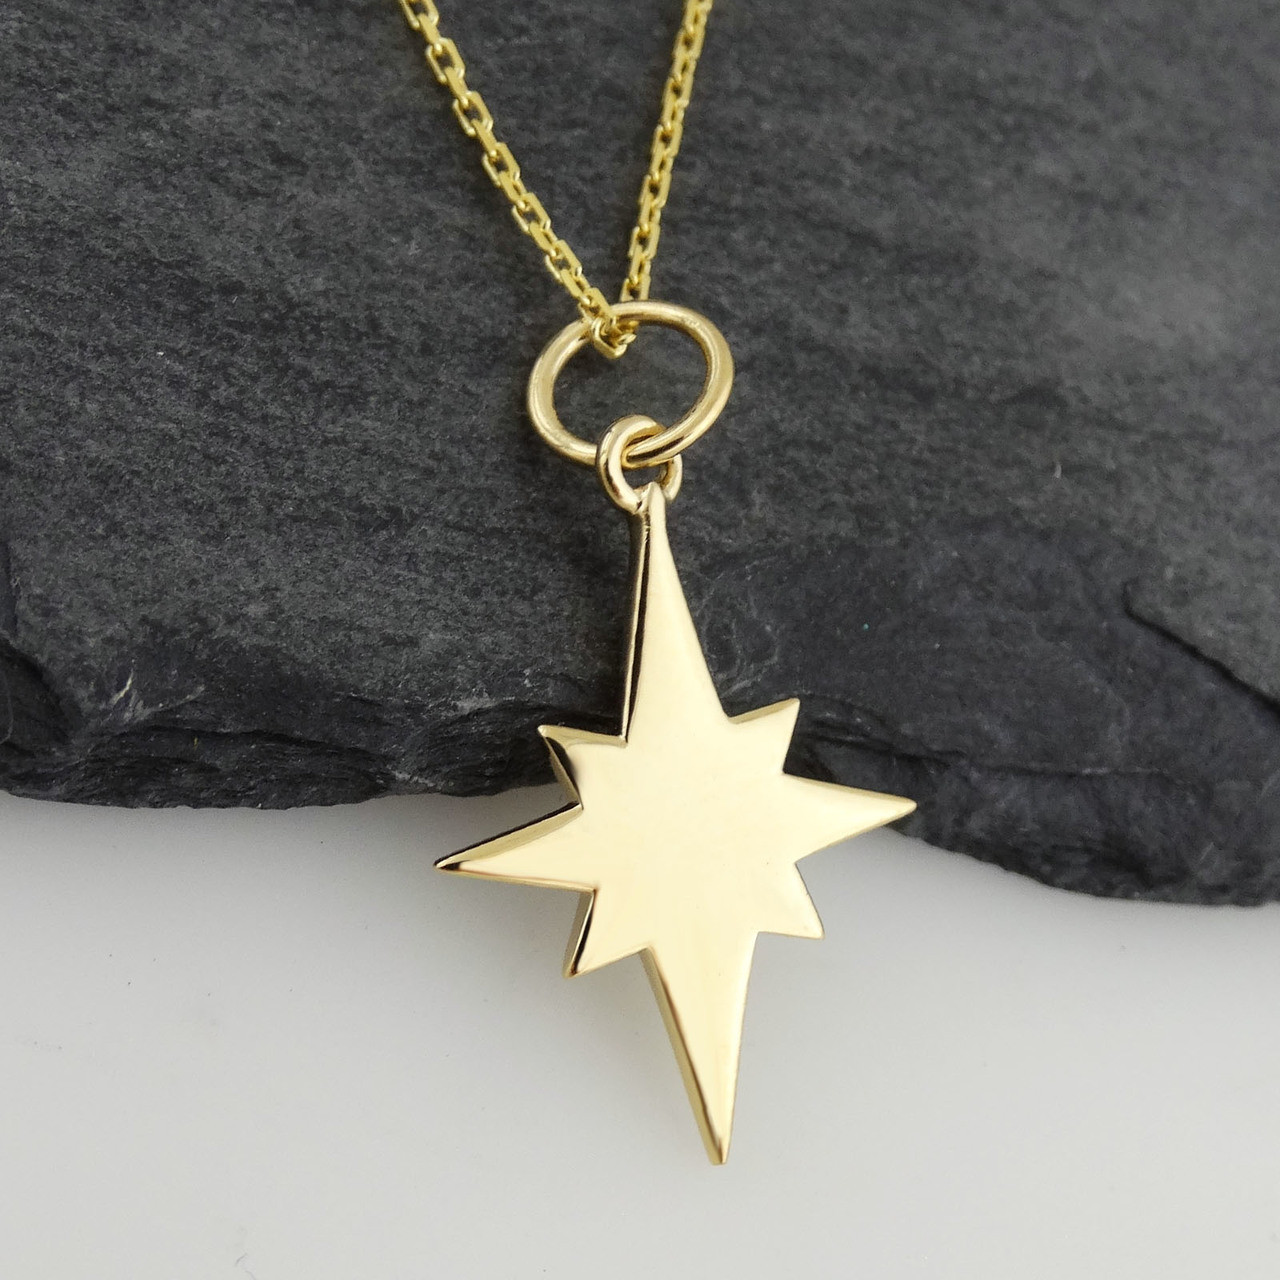 london product north alexi pendant necklaces necklace star gold